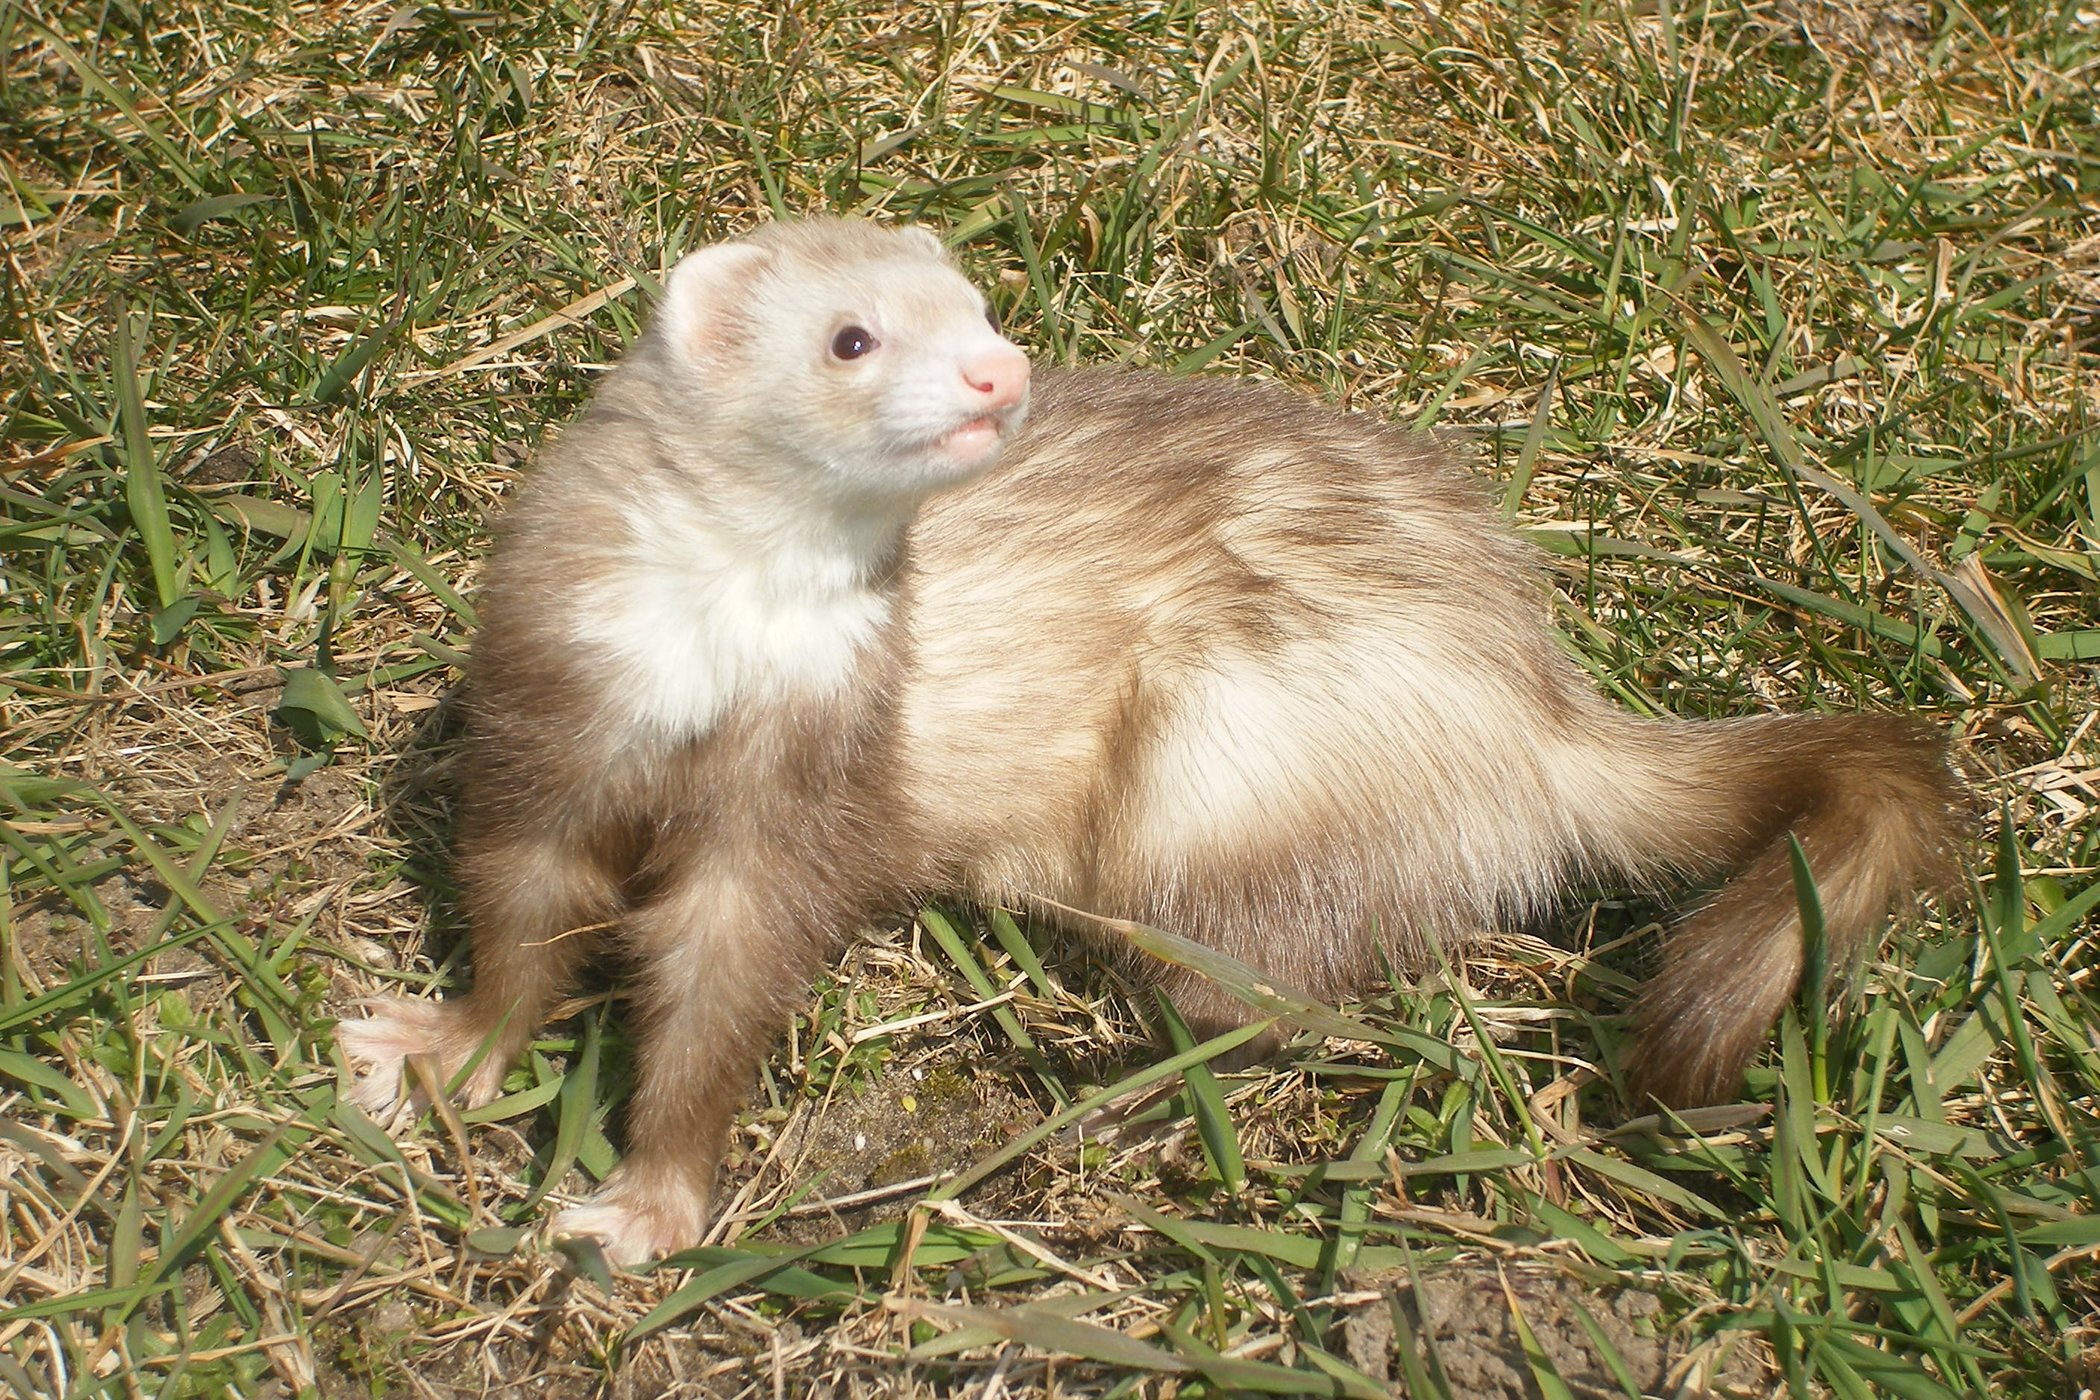 Abnormally Large Kidneys in Ferrets